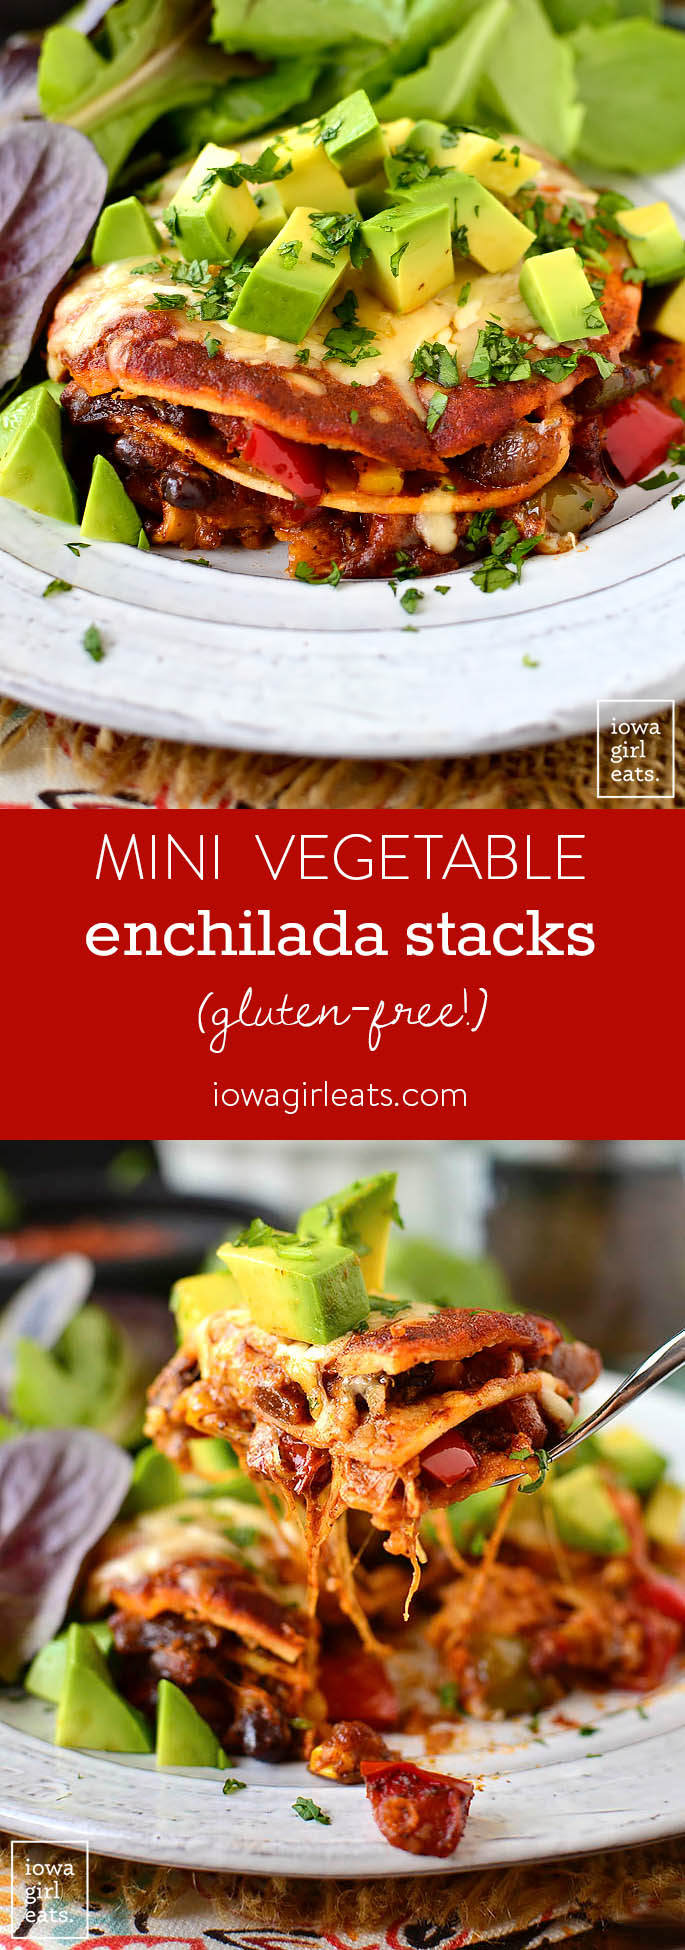 Mini Vegetable Enchilada Stacks are perfectly proportioned and full of fresh veggies, cheese, and enchilada sauce. A fun and delicious gluten-free dinner recipe! | iowagirleats.com